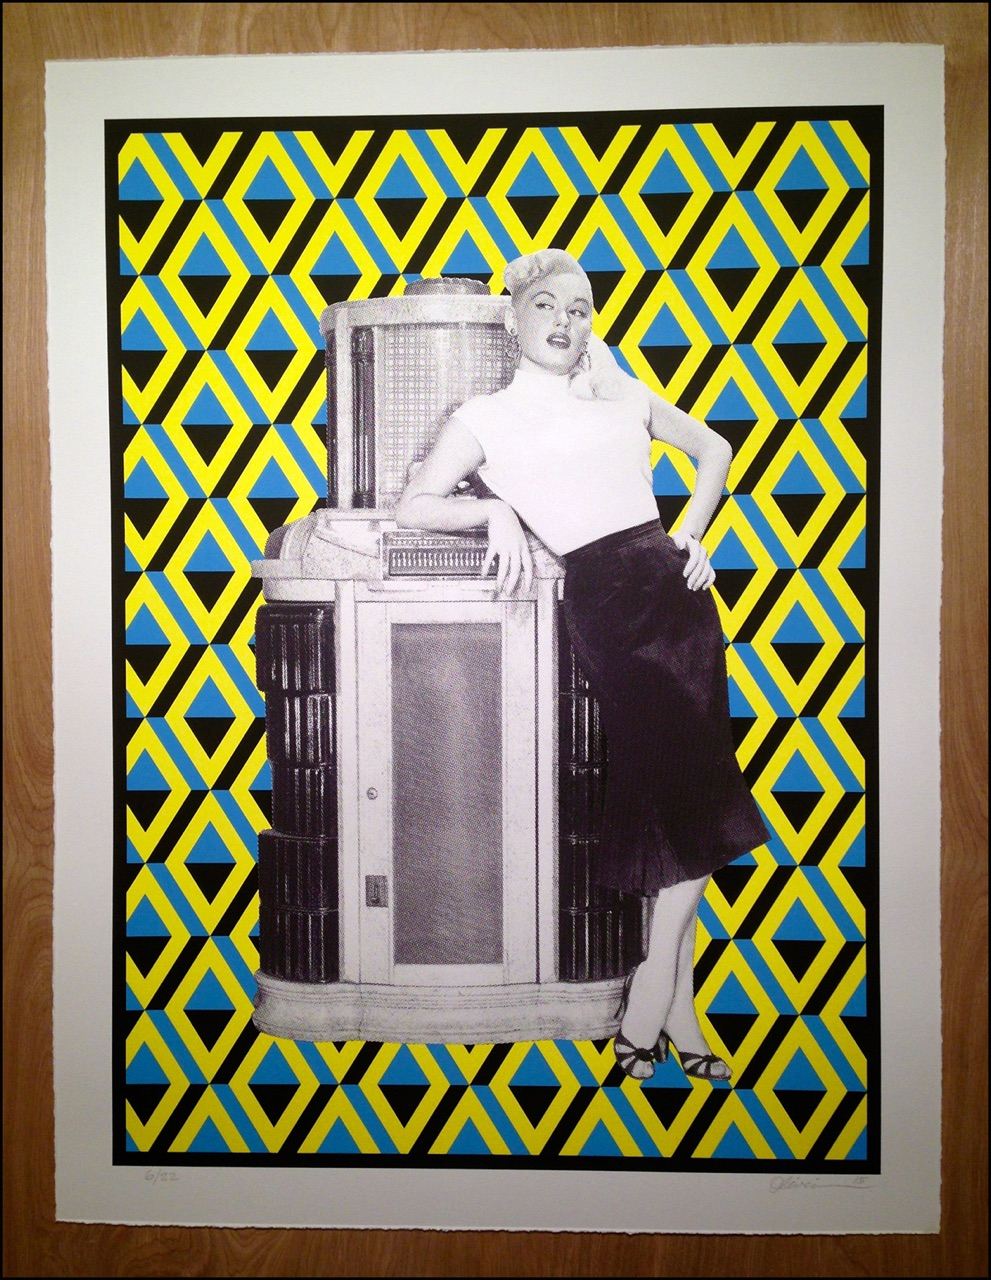 """Let's Dance"" by Tim Oliveira.  20.5"" x 27"" 3-color Screenprint.  Ed of 22 S/N.  $60 (First edition)"